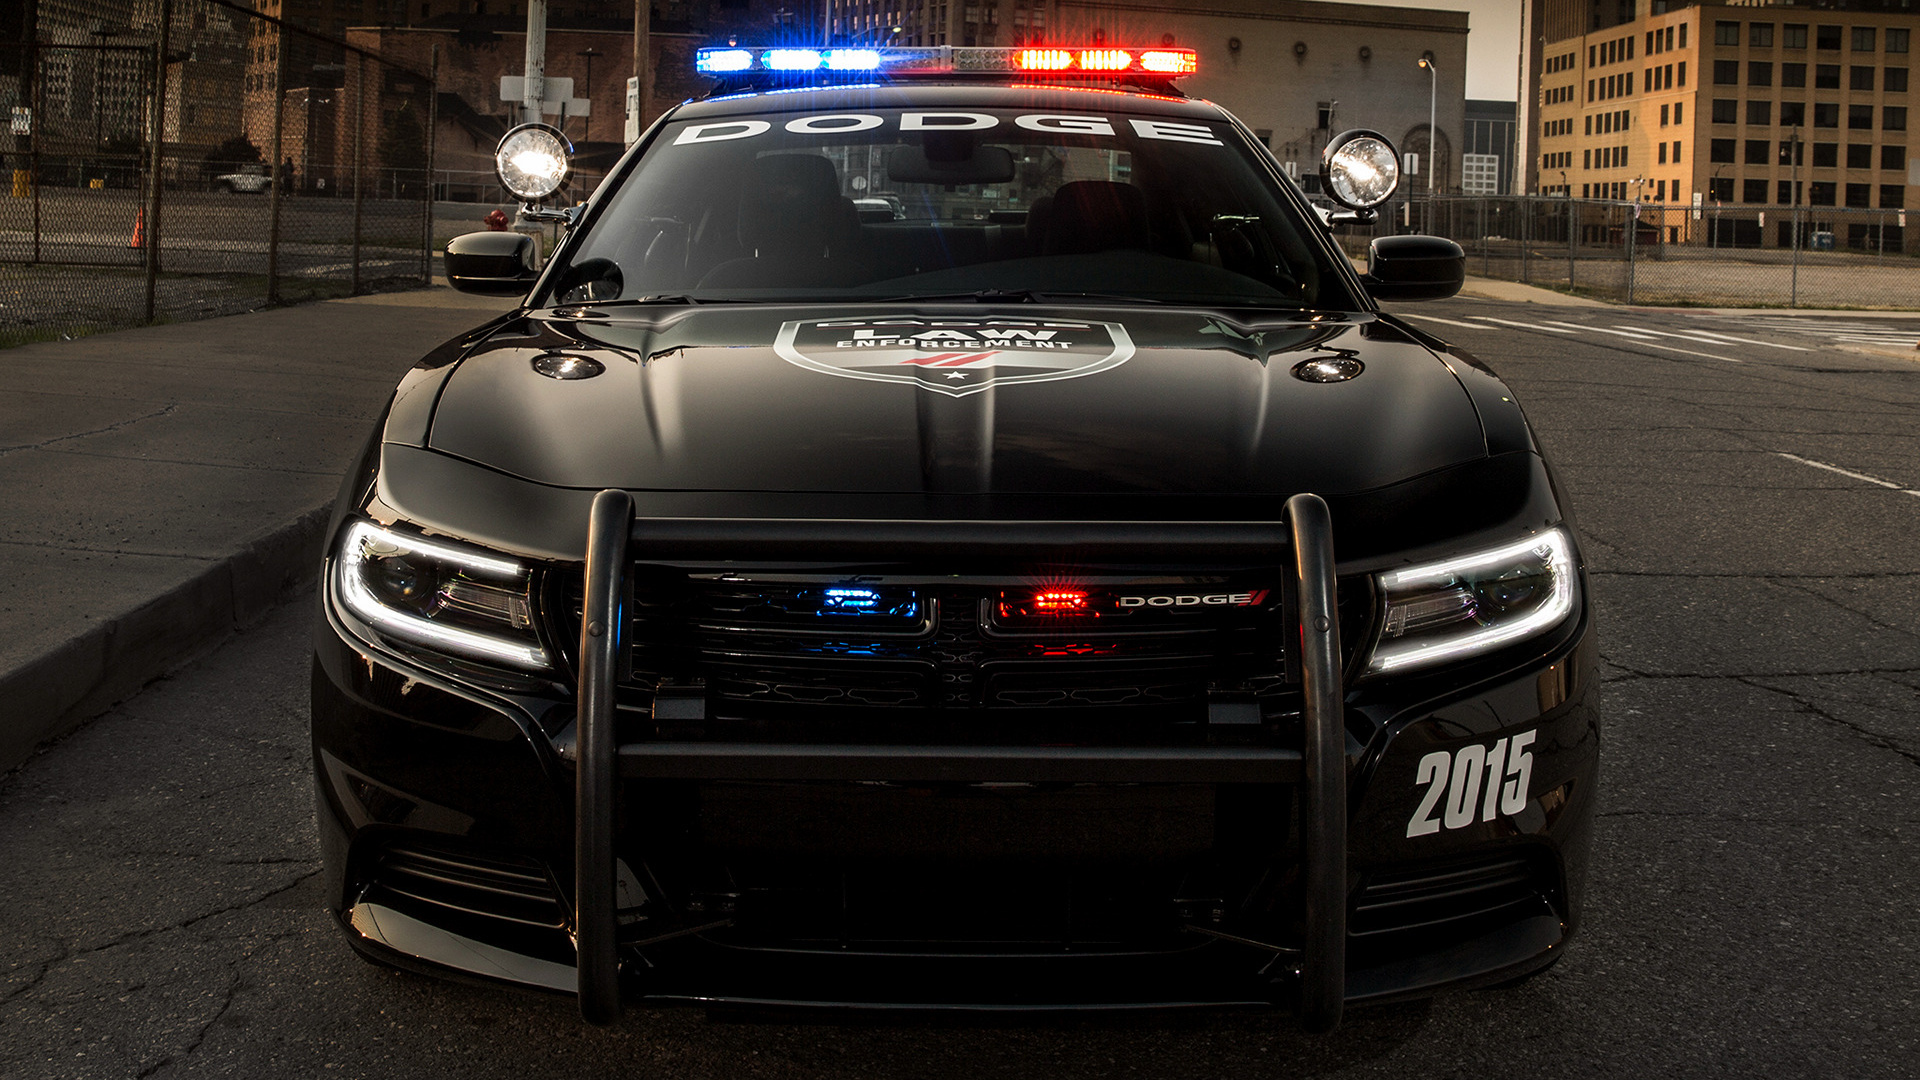 2015 Dodge Charger Pursuit Awd Wallpapers And Hd Images